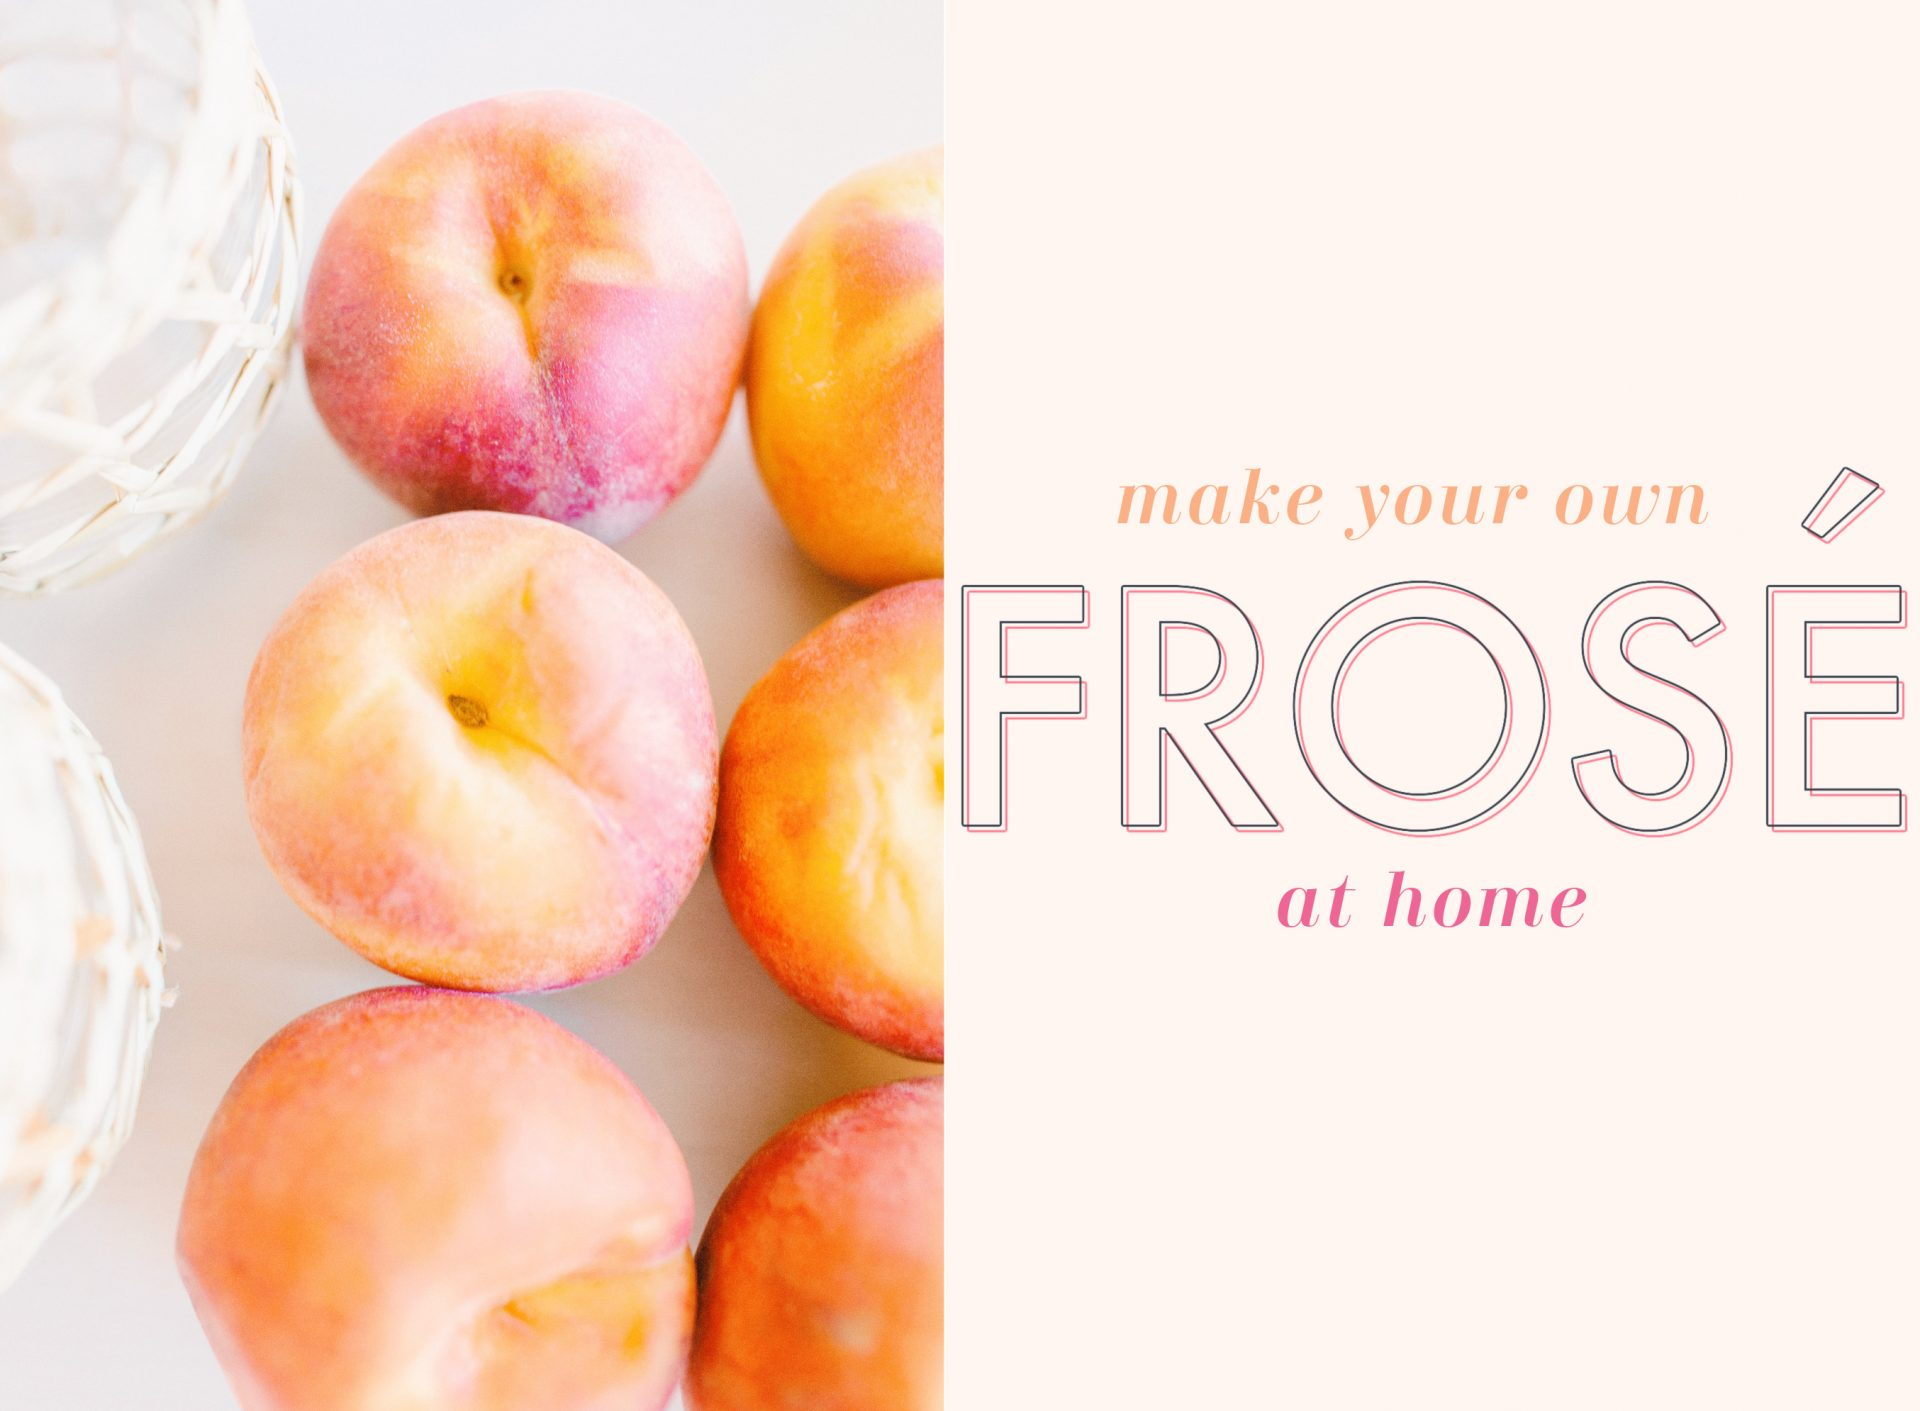 frose, rose, peaches, lemon, mango, frozen rose, frozen drinks, Ava grace, summer, spring, refreshing, party drinks, at home frose, frozen alcoholic beverage, ice cream maker